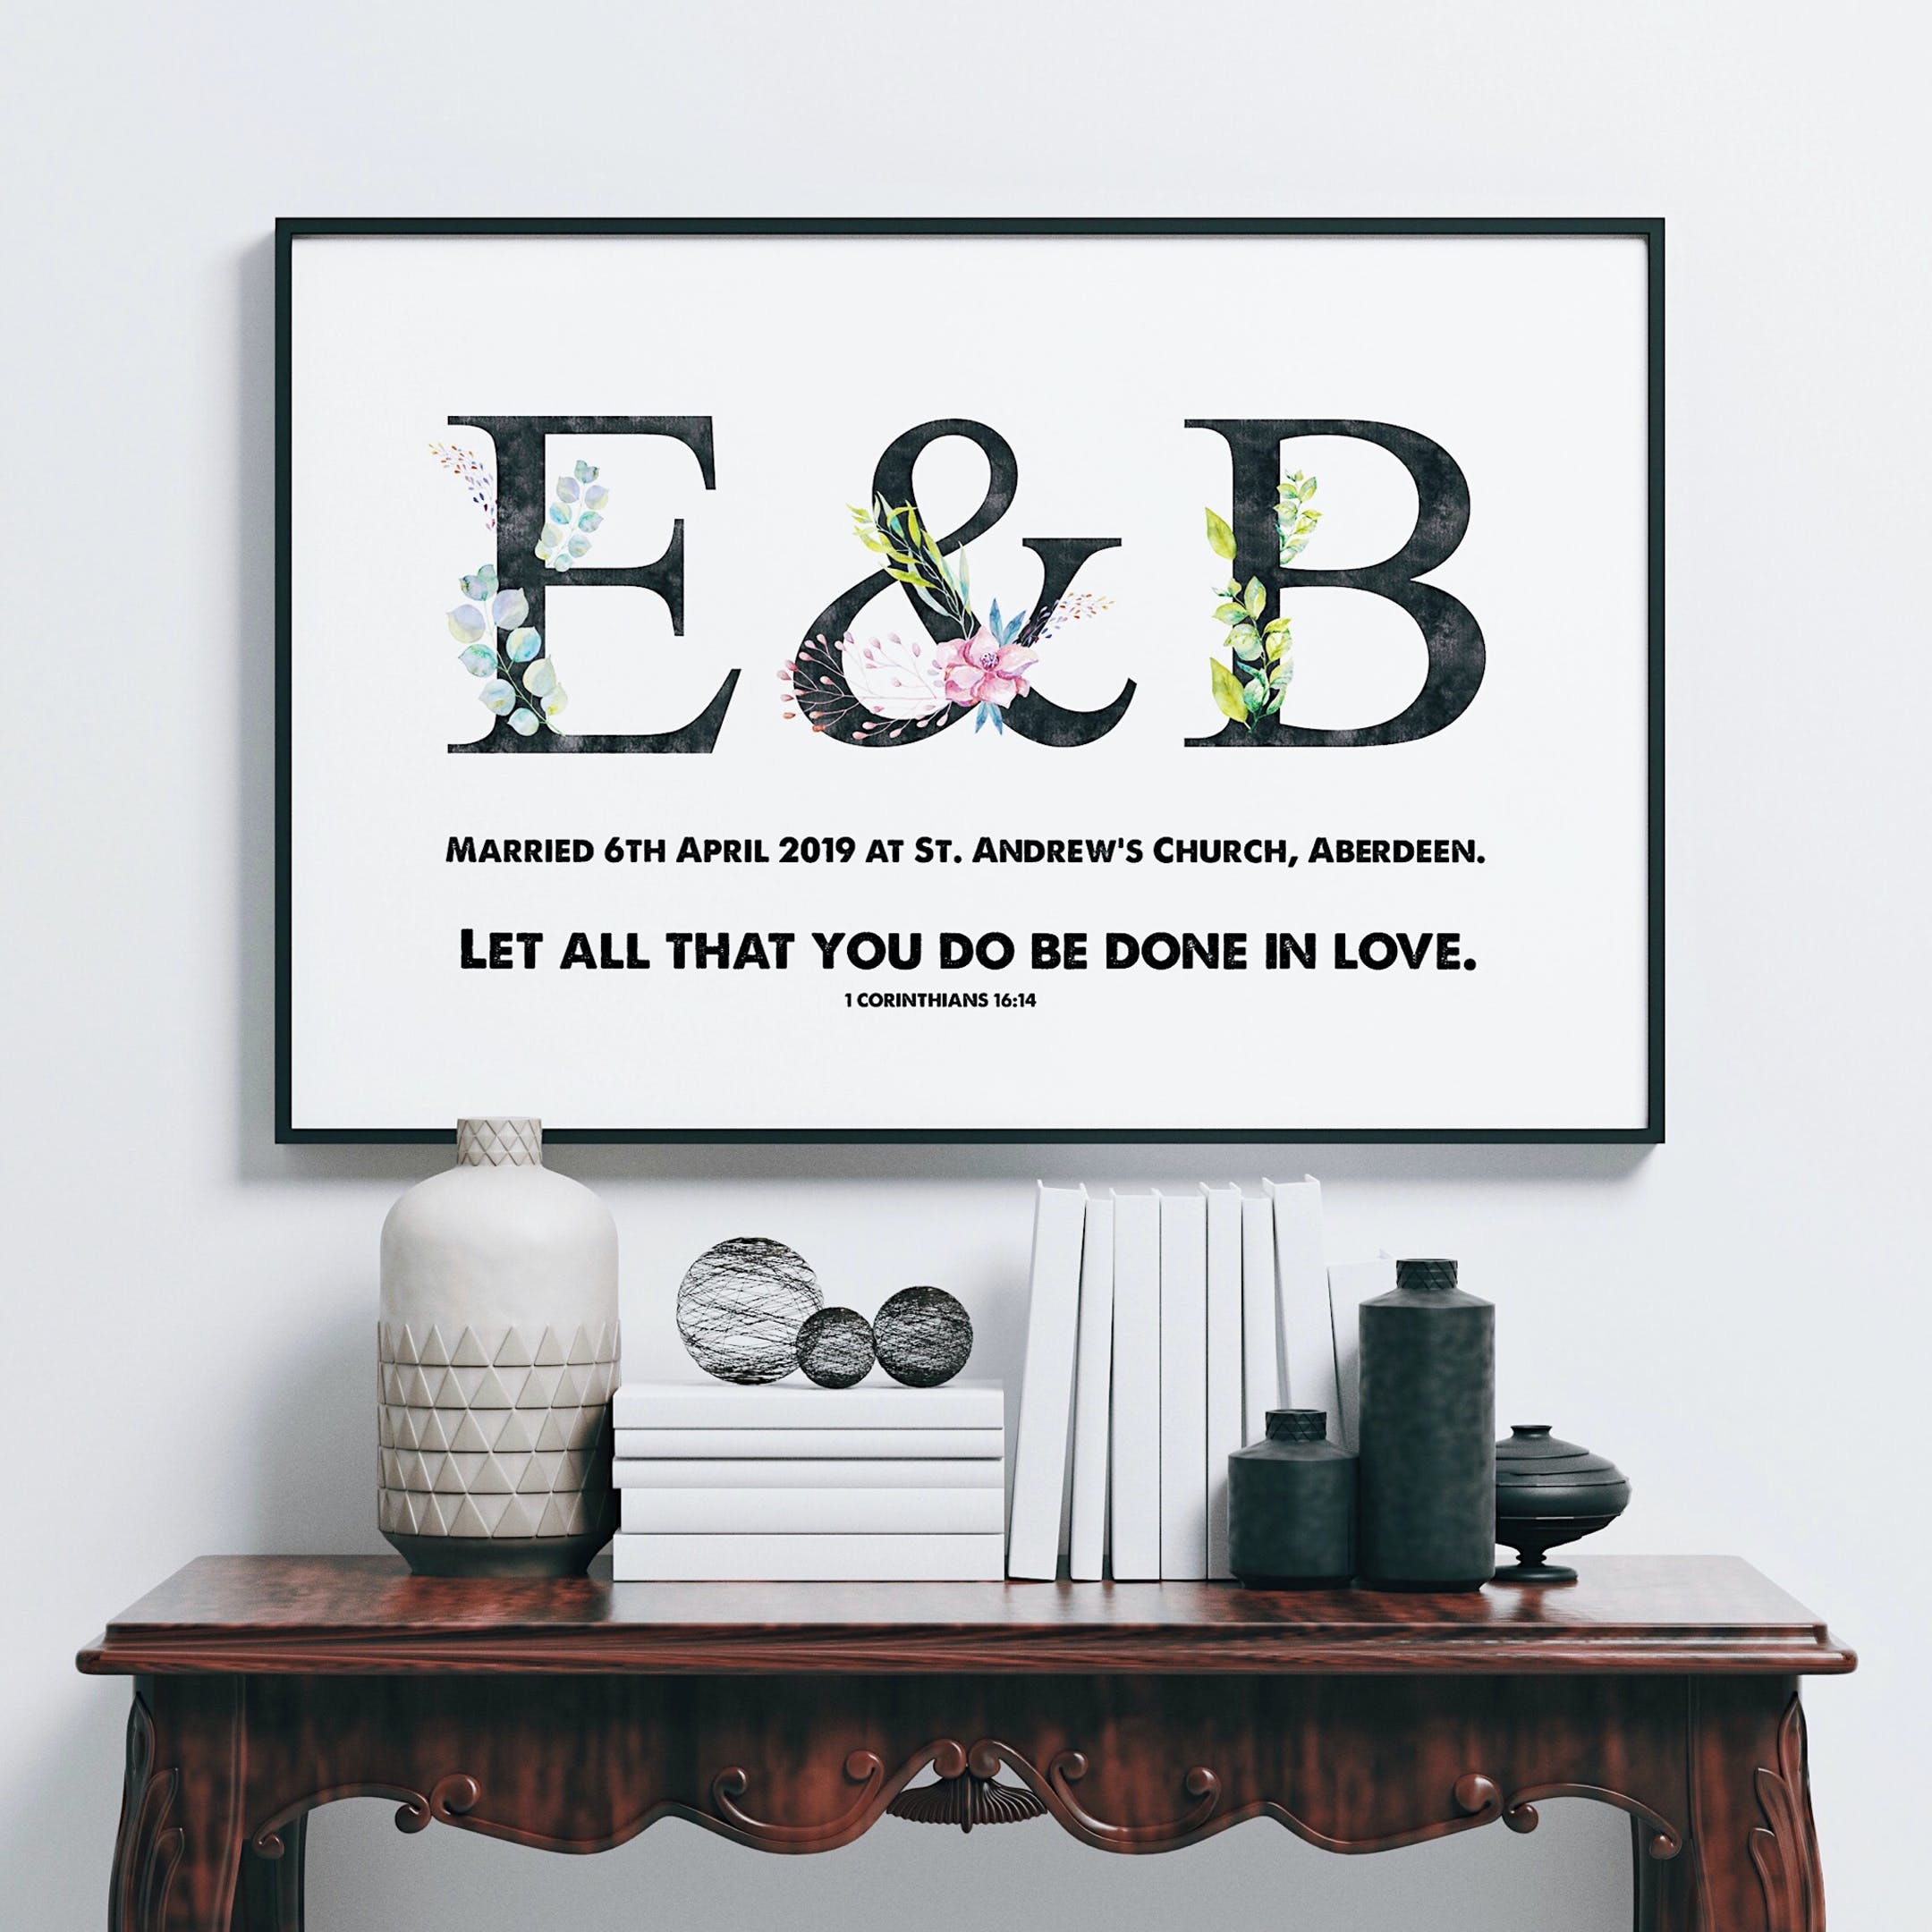 Personalised Wedding Print - Let All That You Do Be Done In Love - 1 Corinthians 16:14 - Izzy & Pop